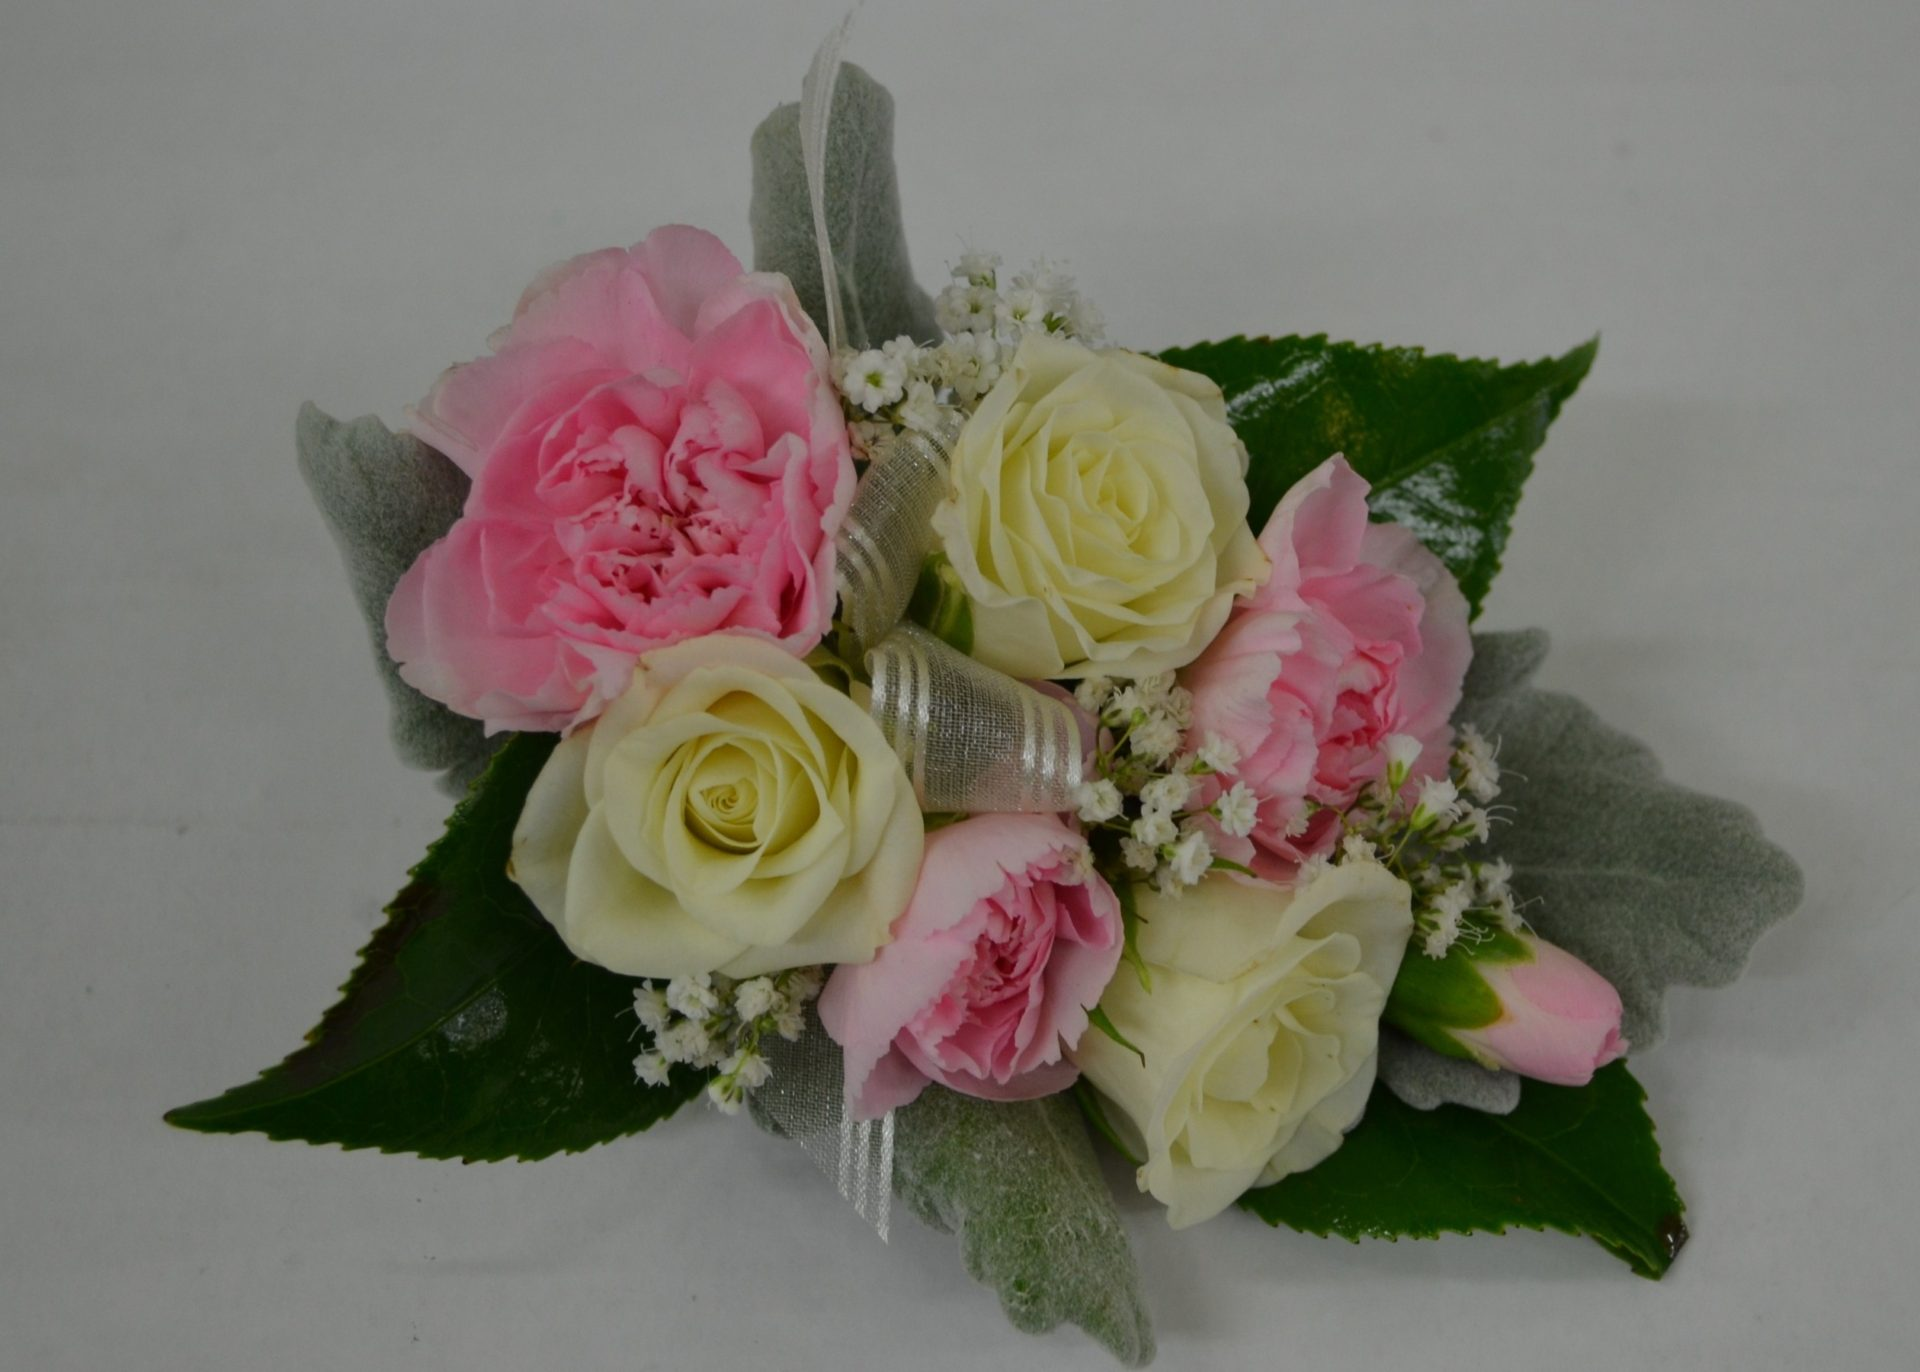 corsage pink & white spray roses and carnations.